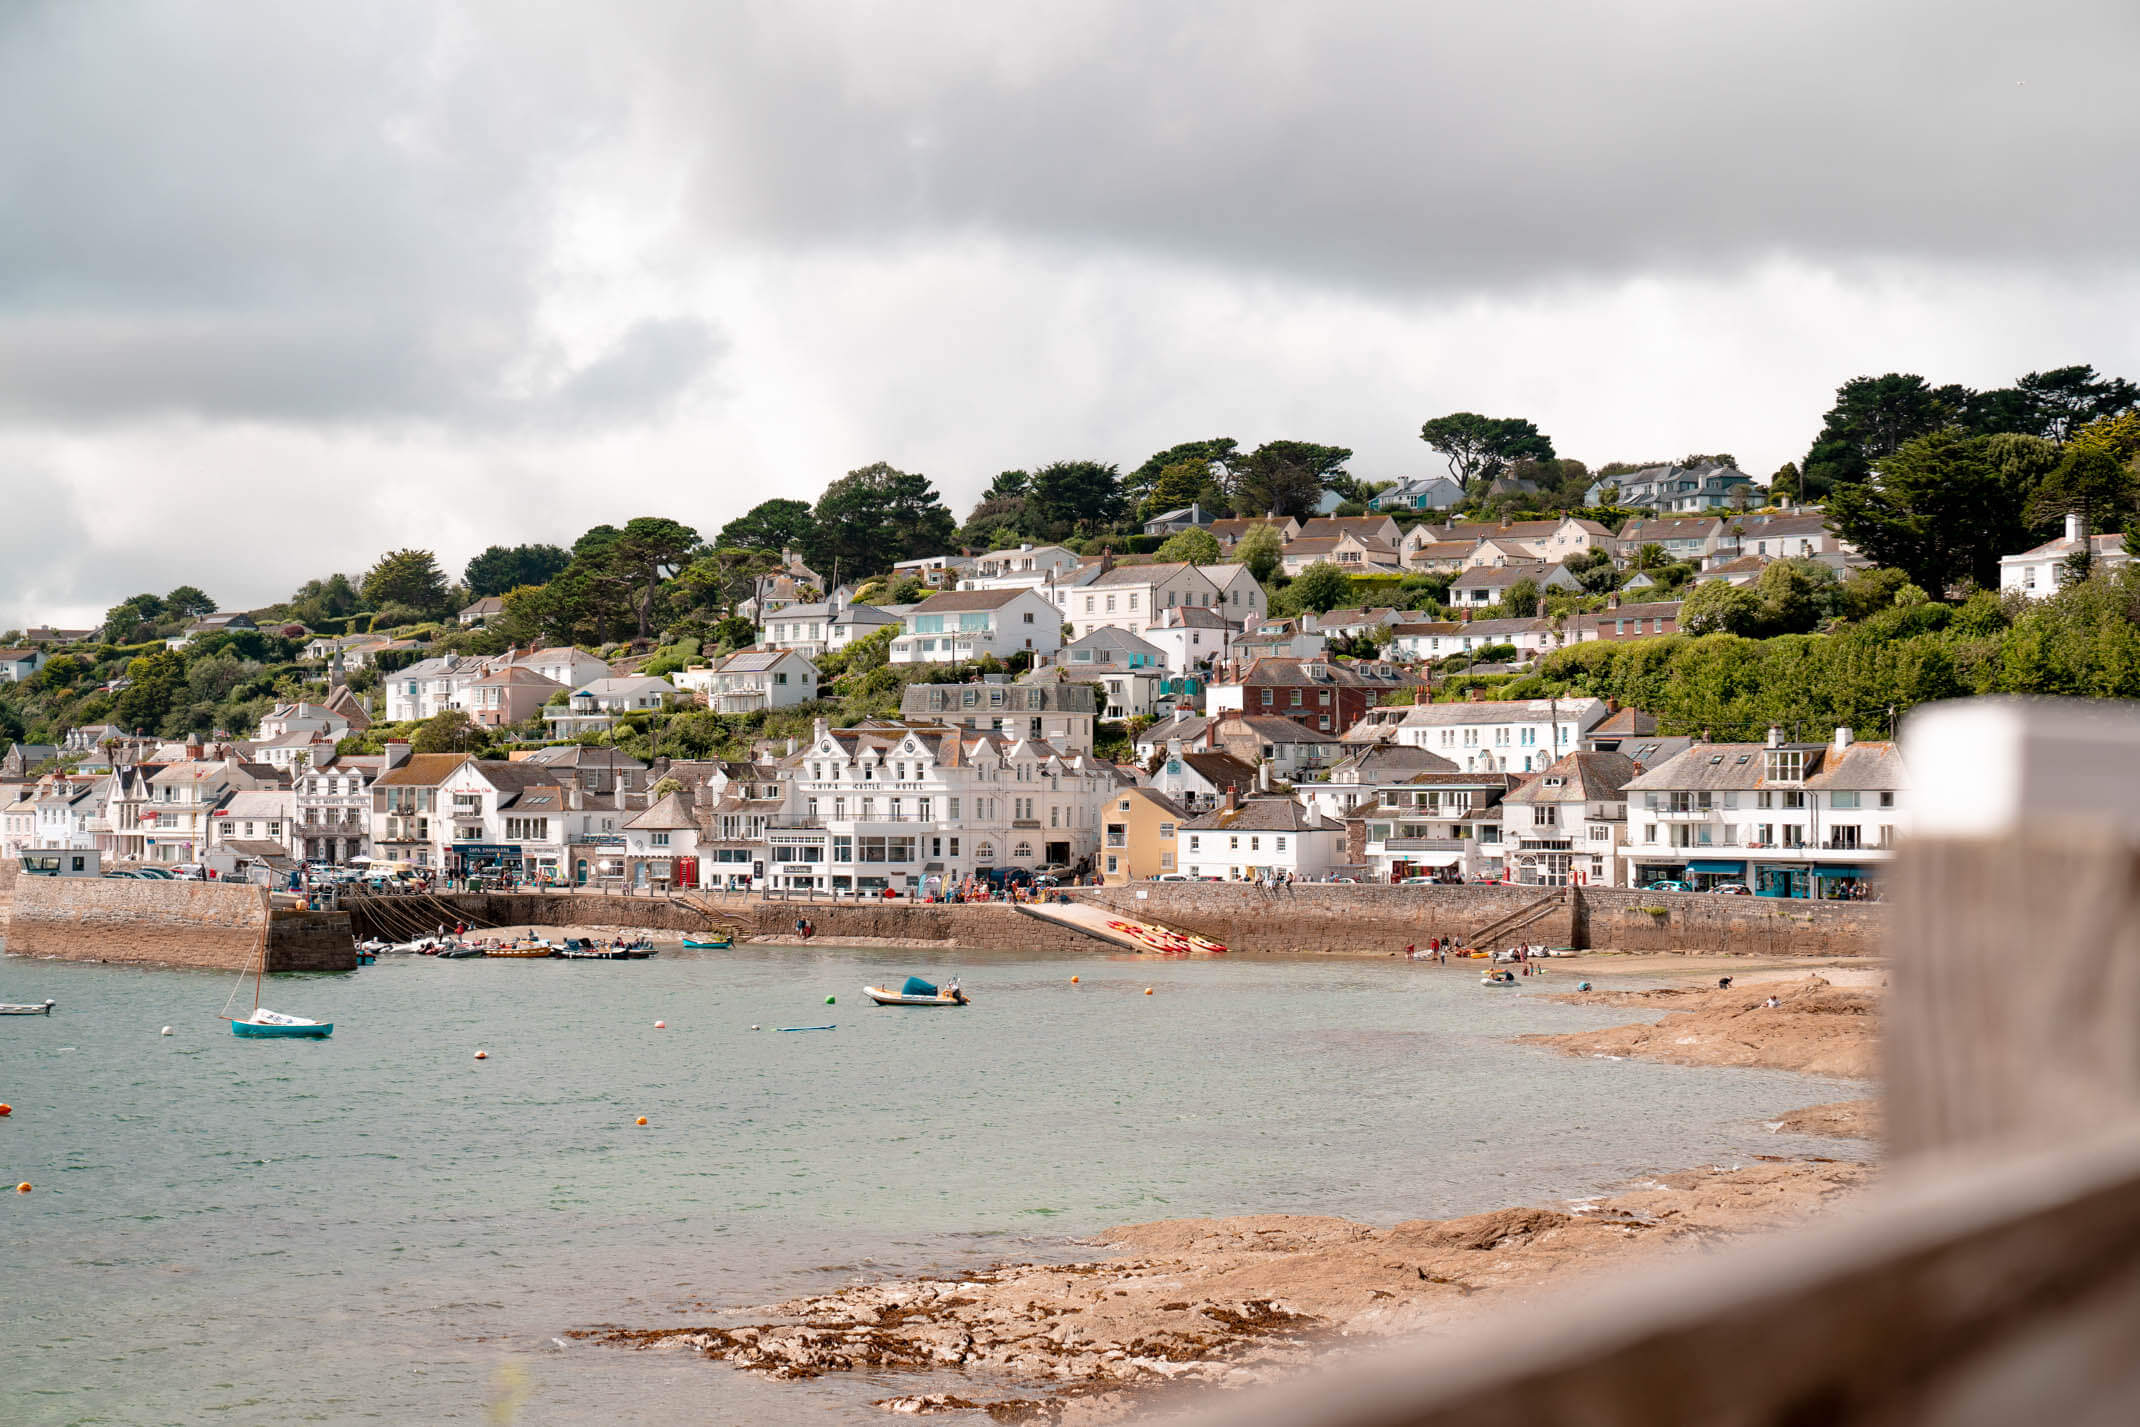 St Mawes: A guide to the most beautiful towns in Cornwall, England